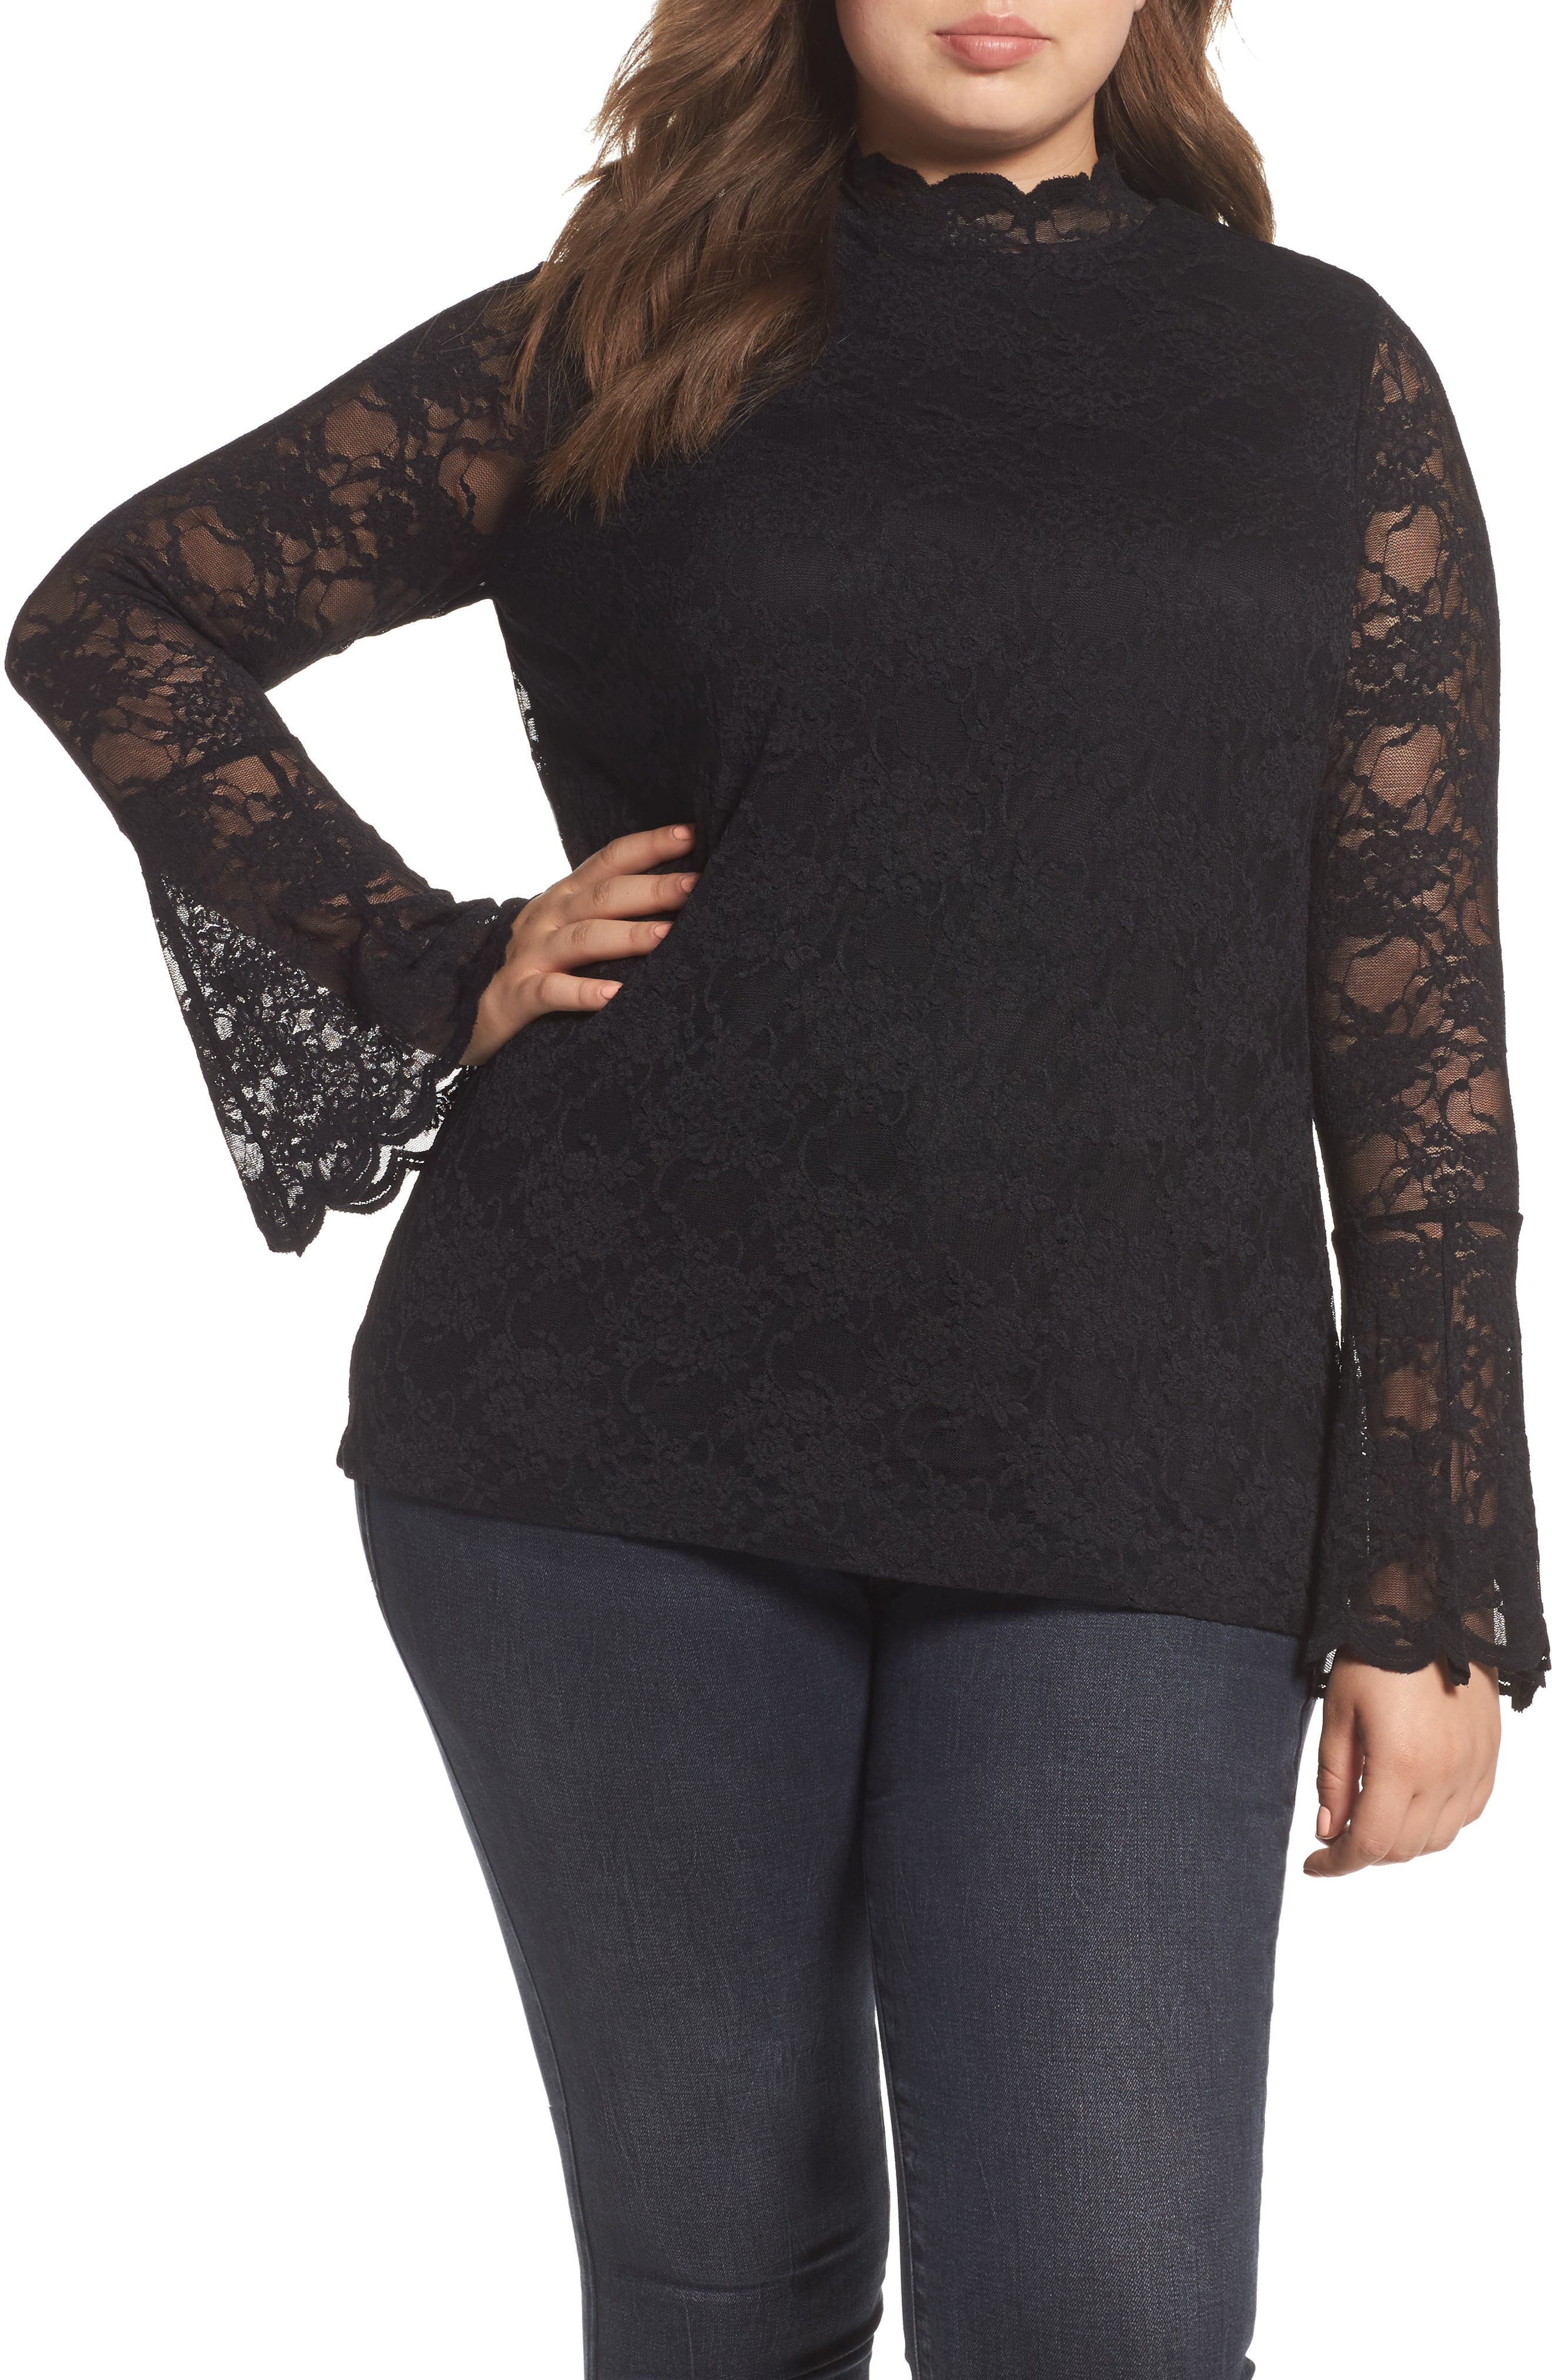 Bell Sleeve Lace Top,                             Main thumbnail 1, color,                             010